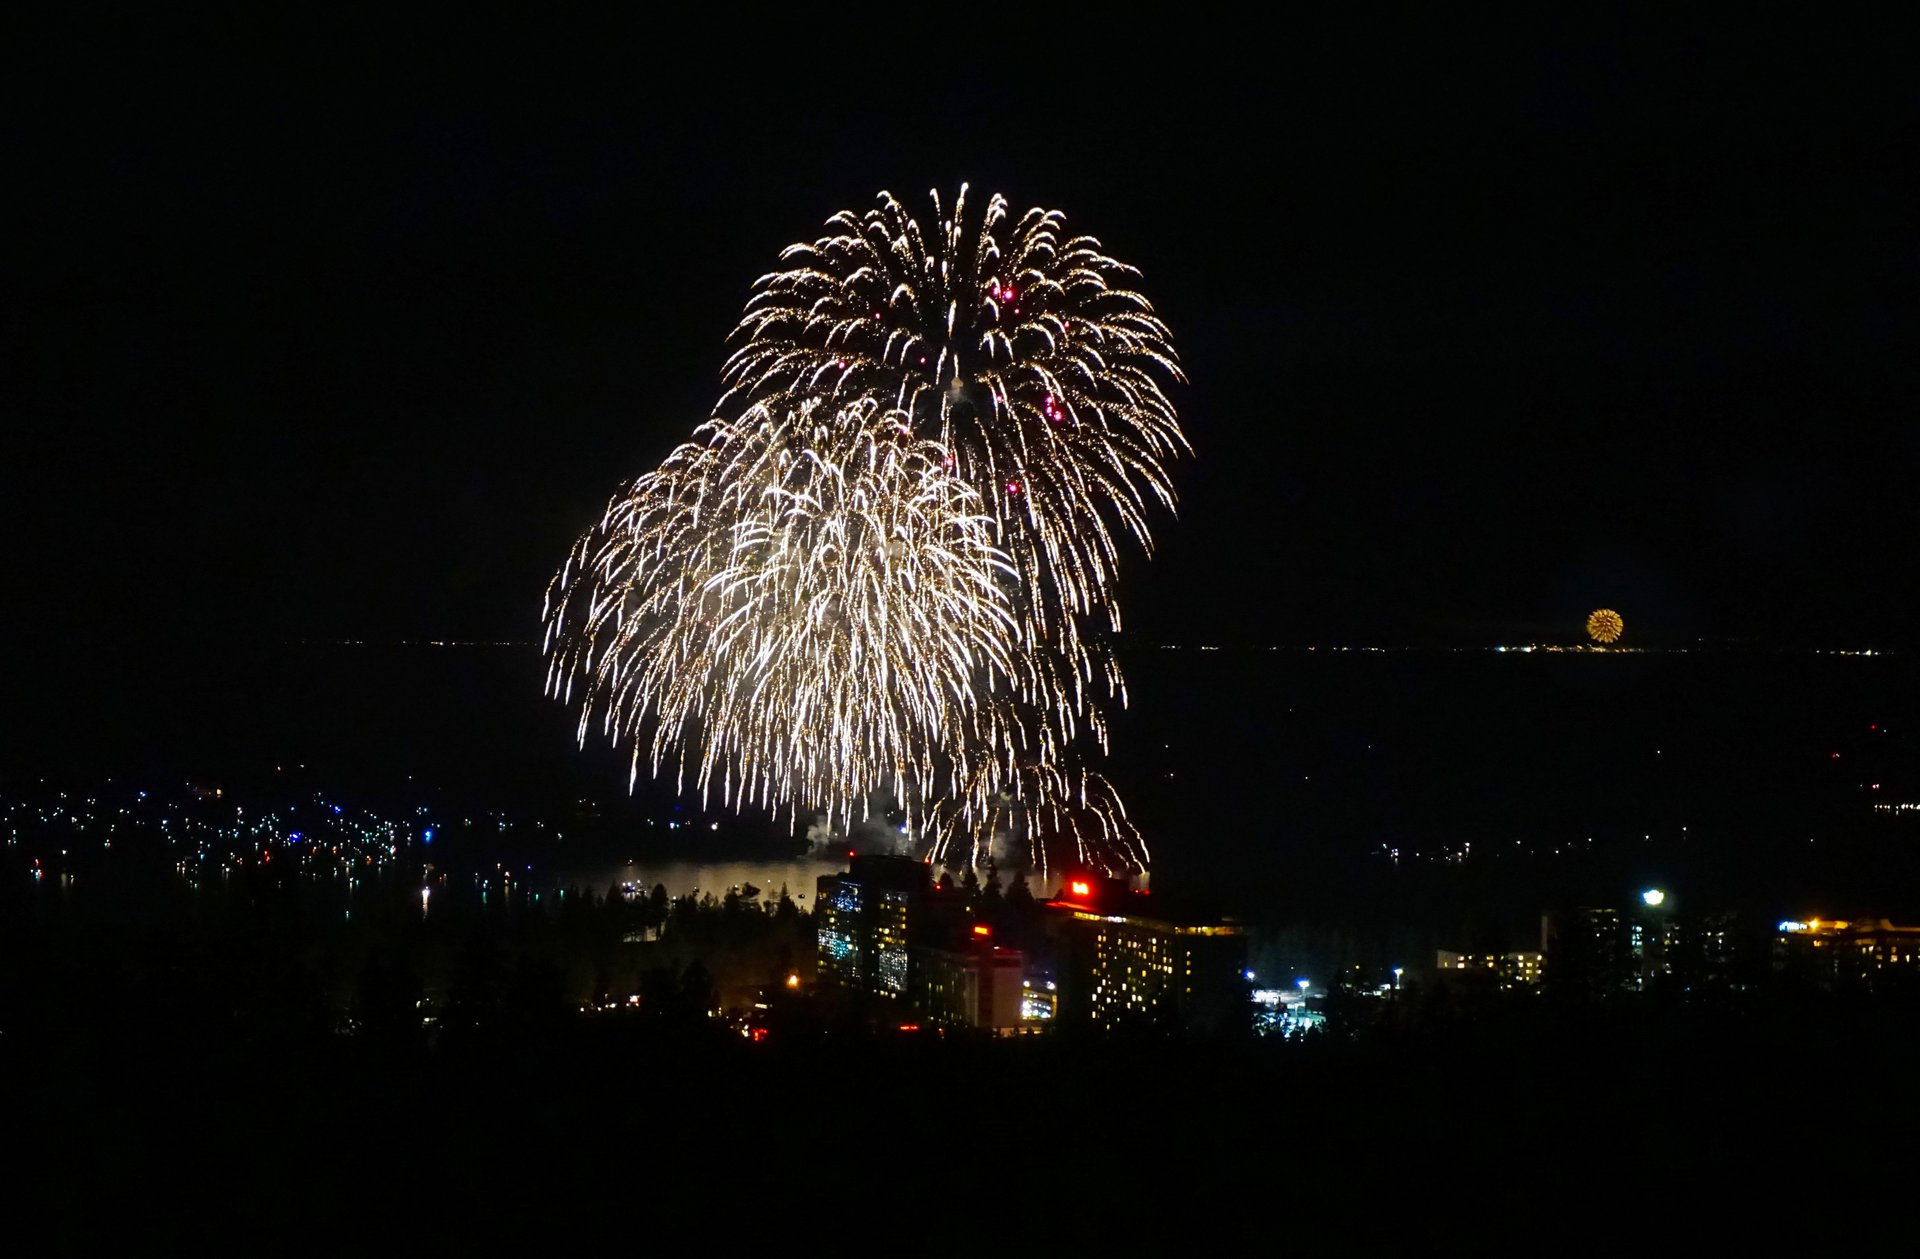 July 4th Fireworks over South Lake Tahoe 2020